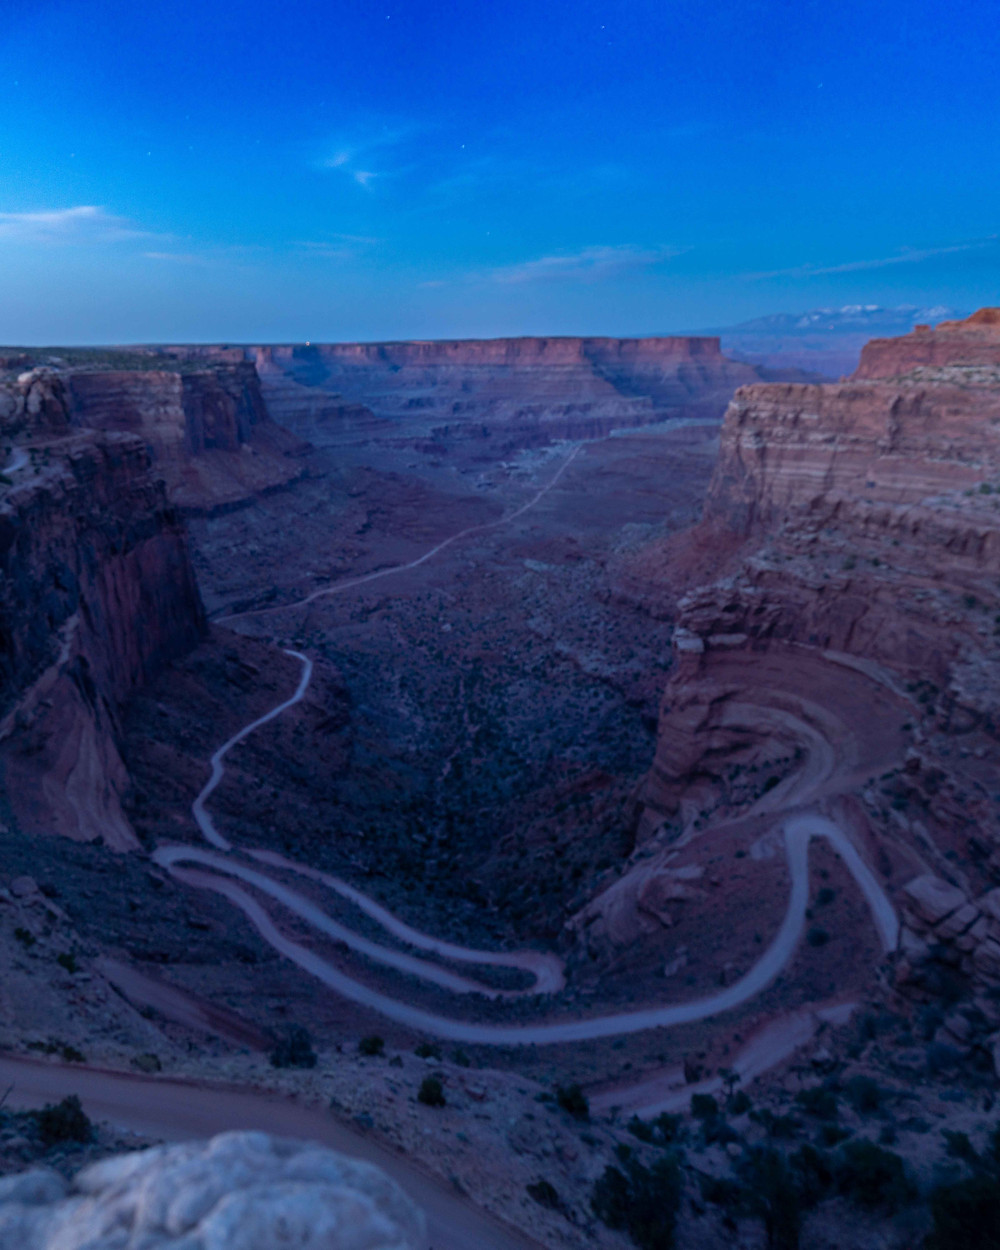 twlight blue hour photo of the shafer trail and canyon floor